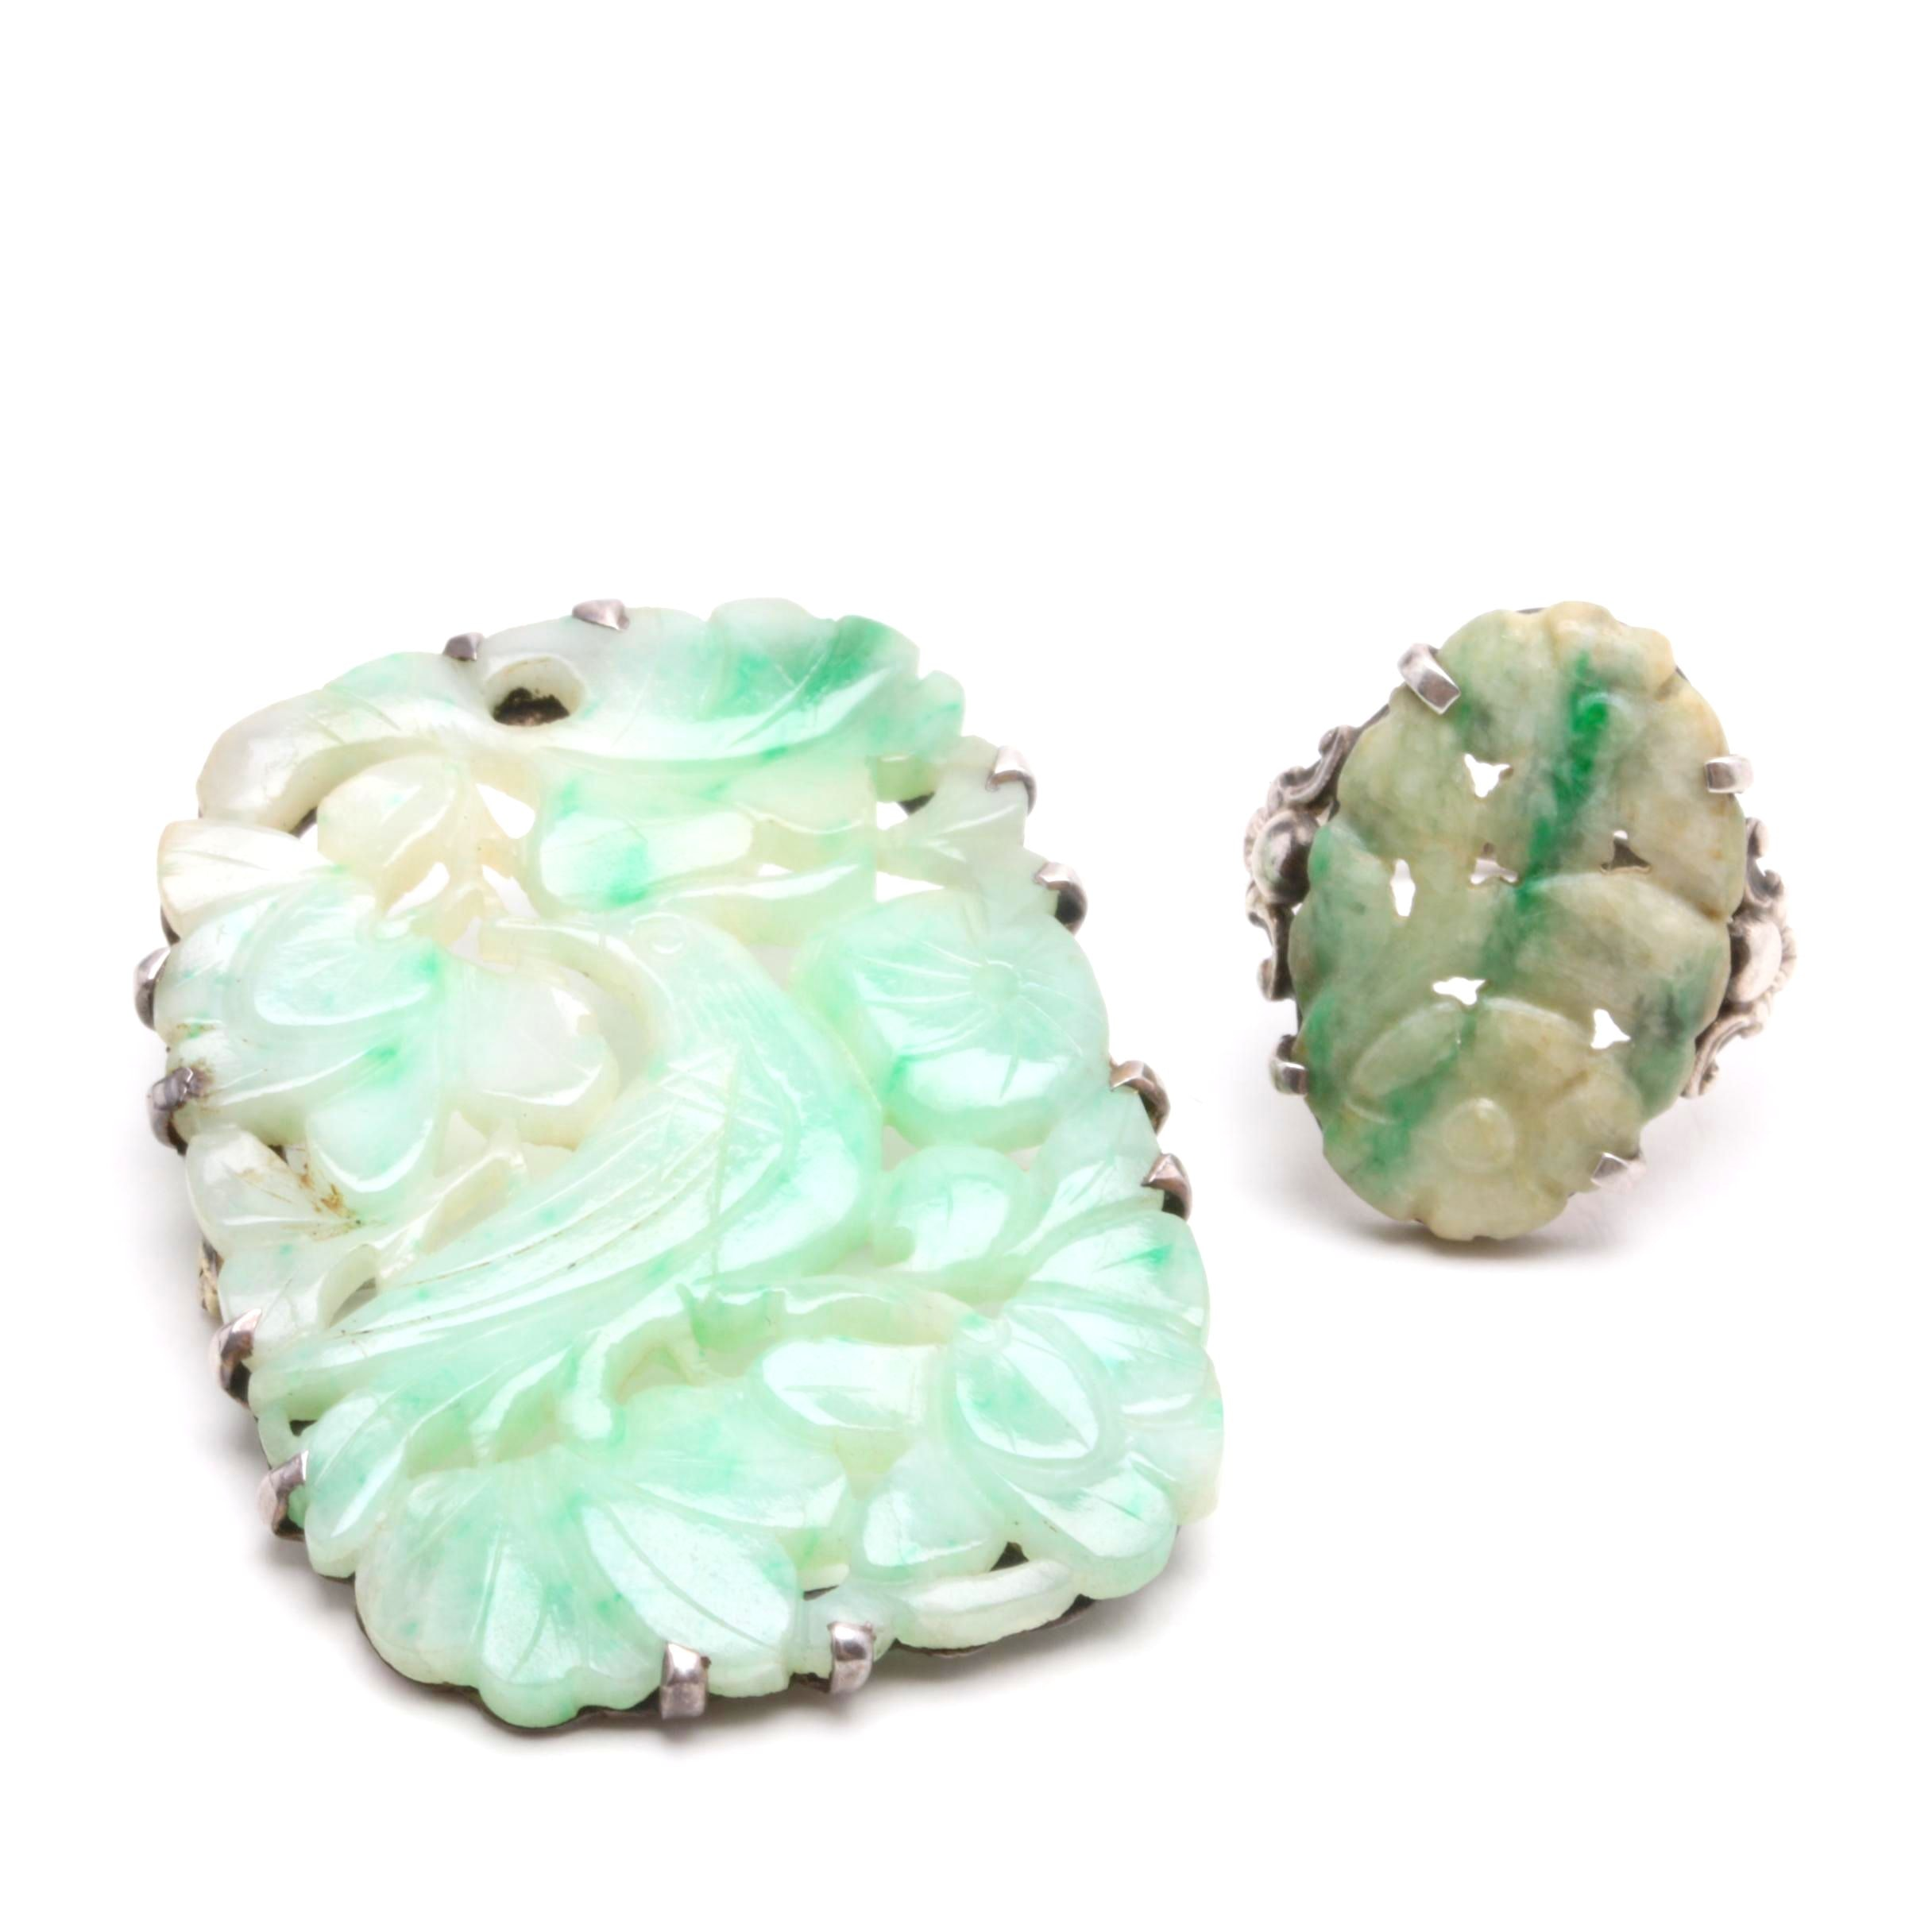 Vintage Carved Jadeite Brooch and Ring, Sterling Silver Settings